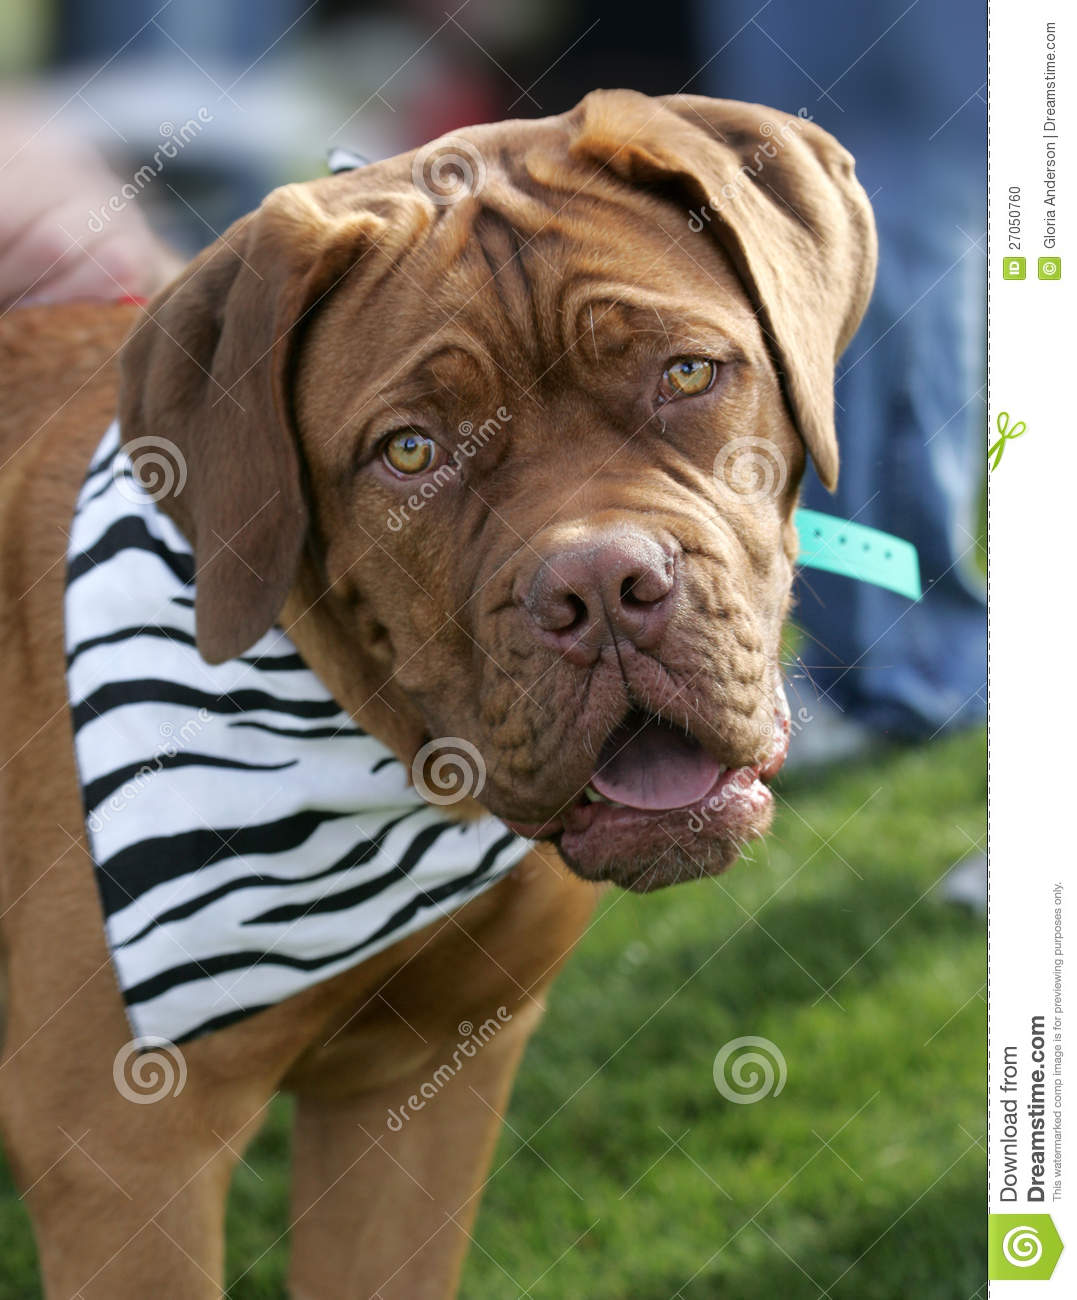 Sonrisa de Dogue de Bordeaux